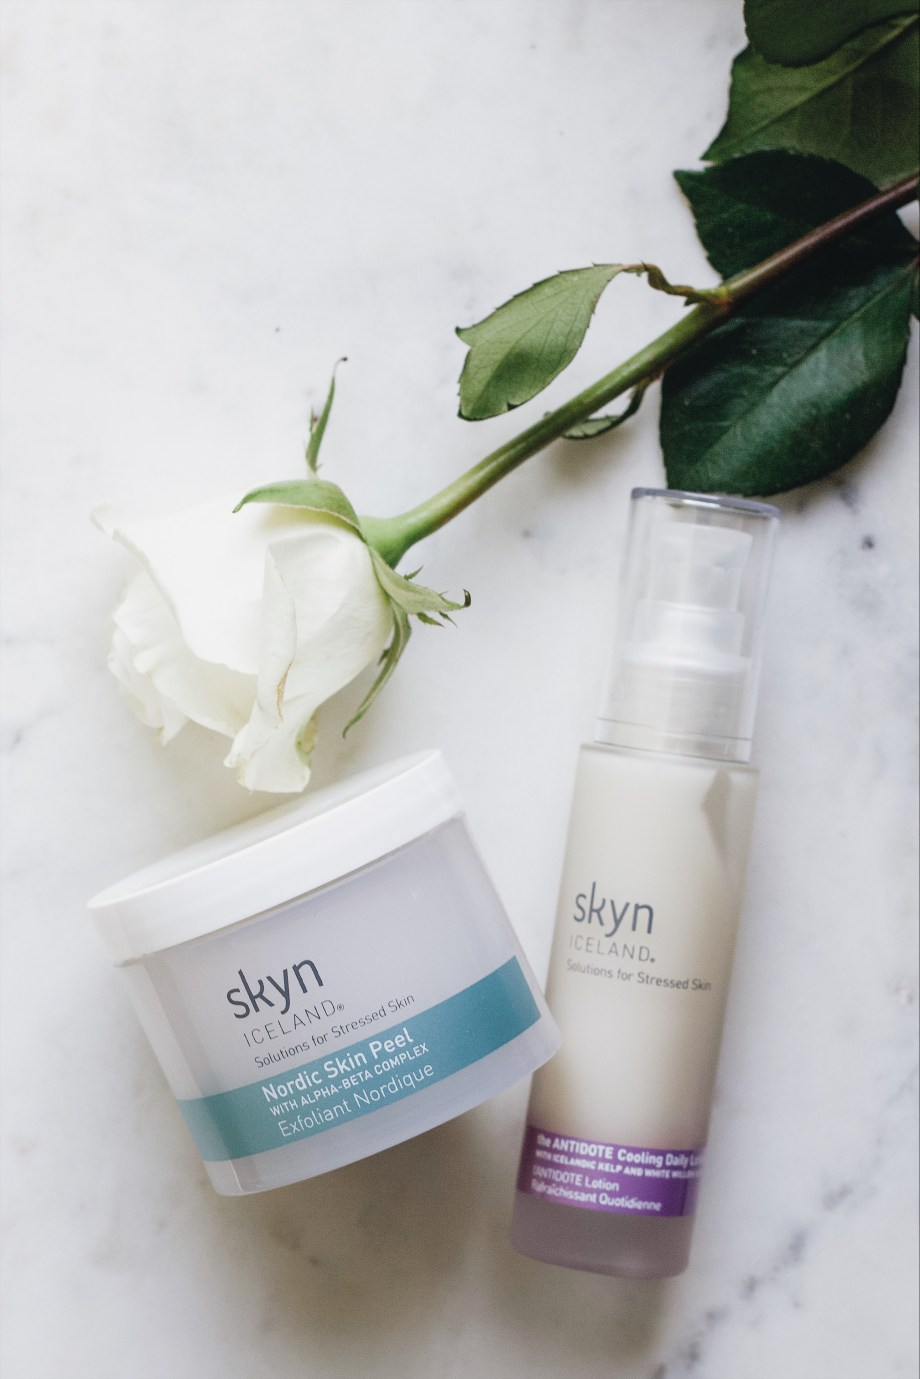 Blackhead Treatment with Skyn ICELAND